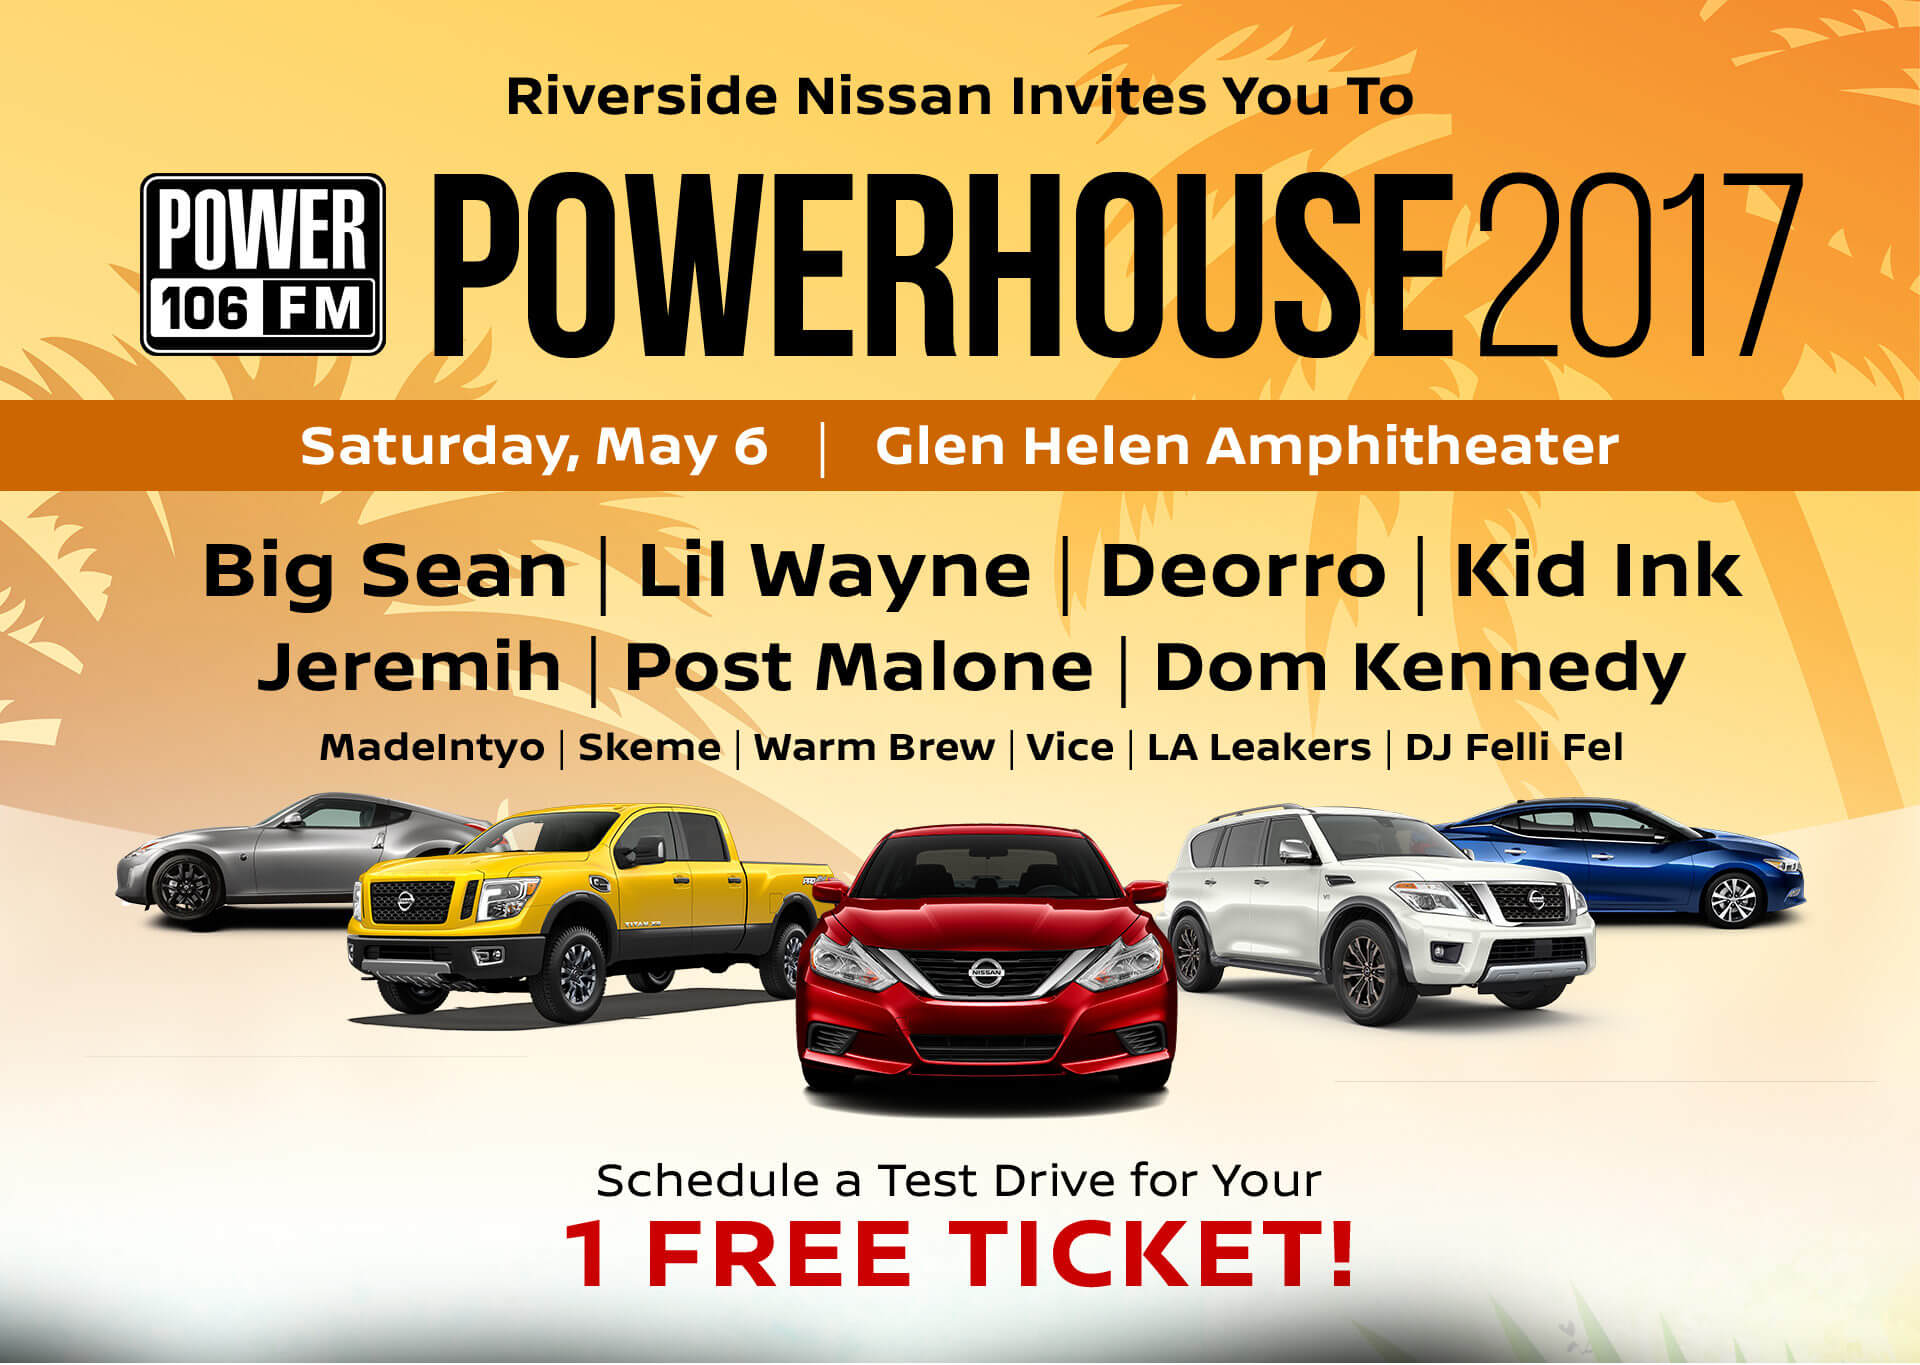 Powerhouse Riverside Nissan